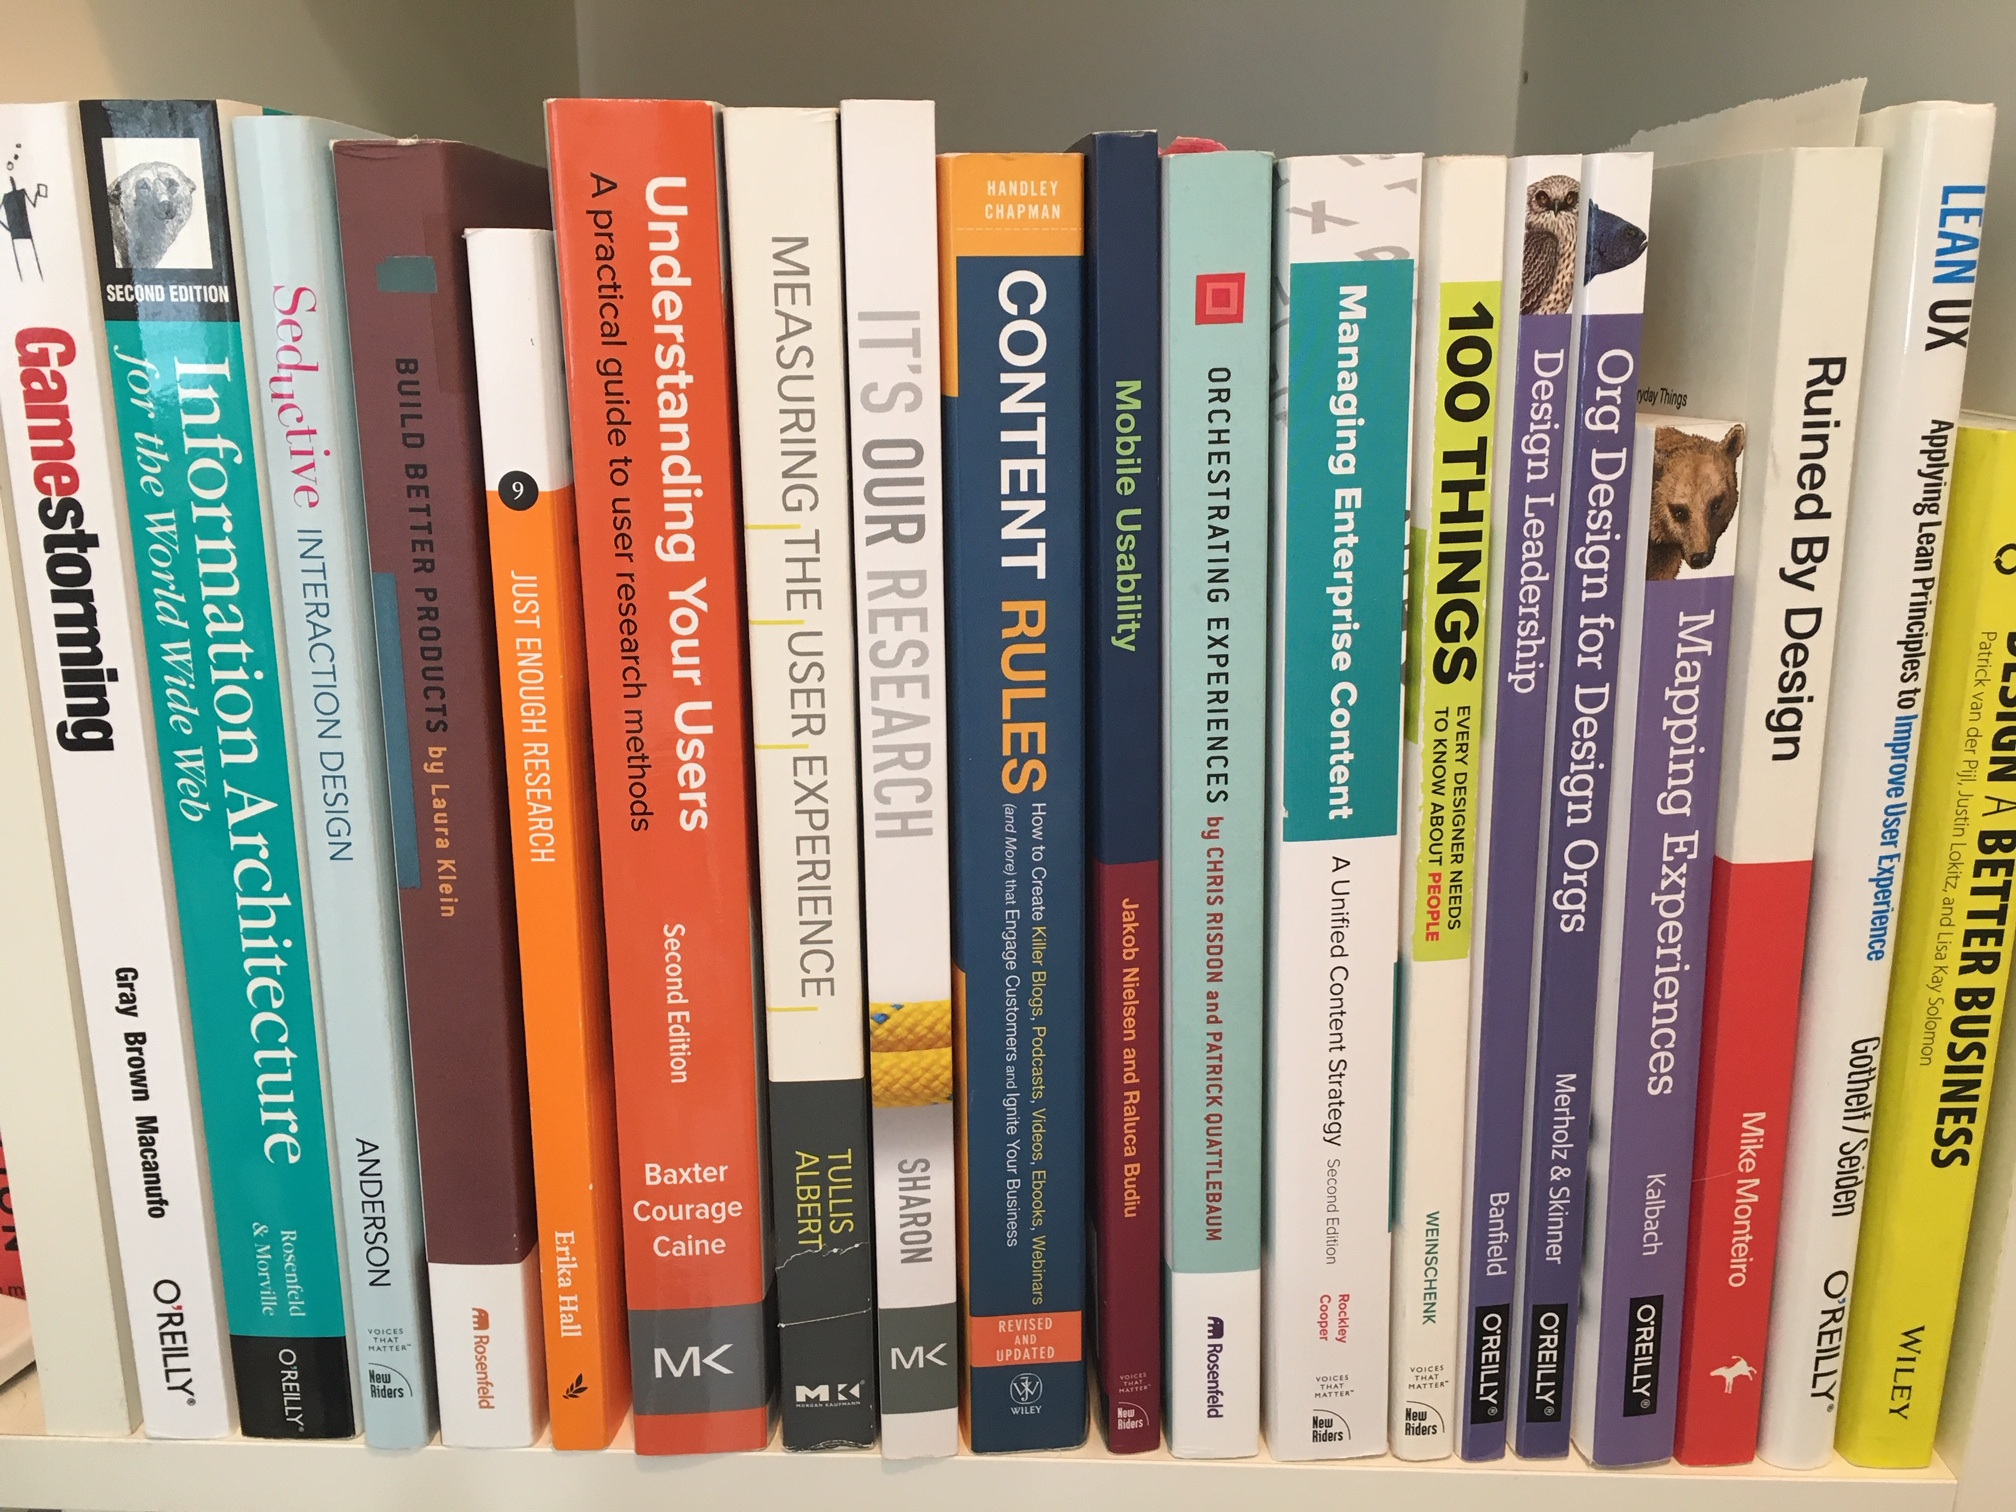 UX books from my own library